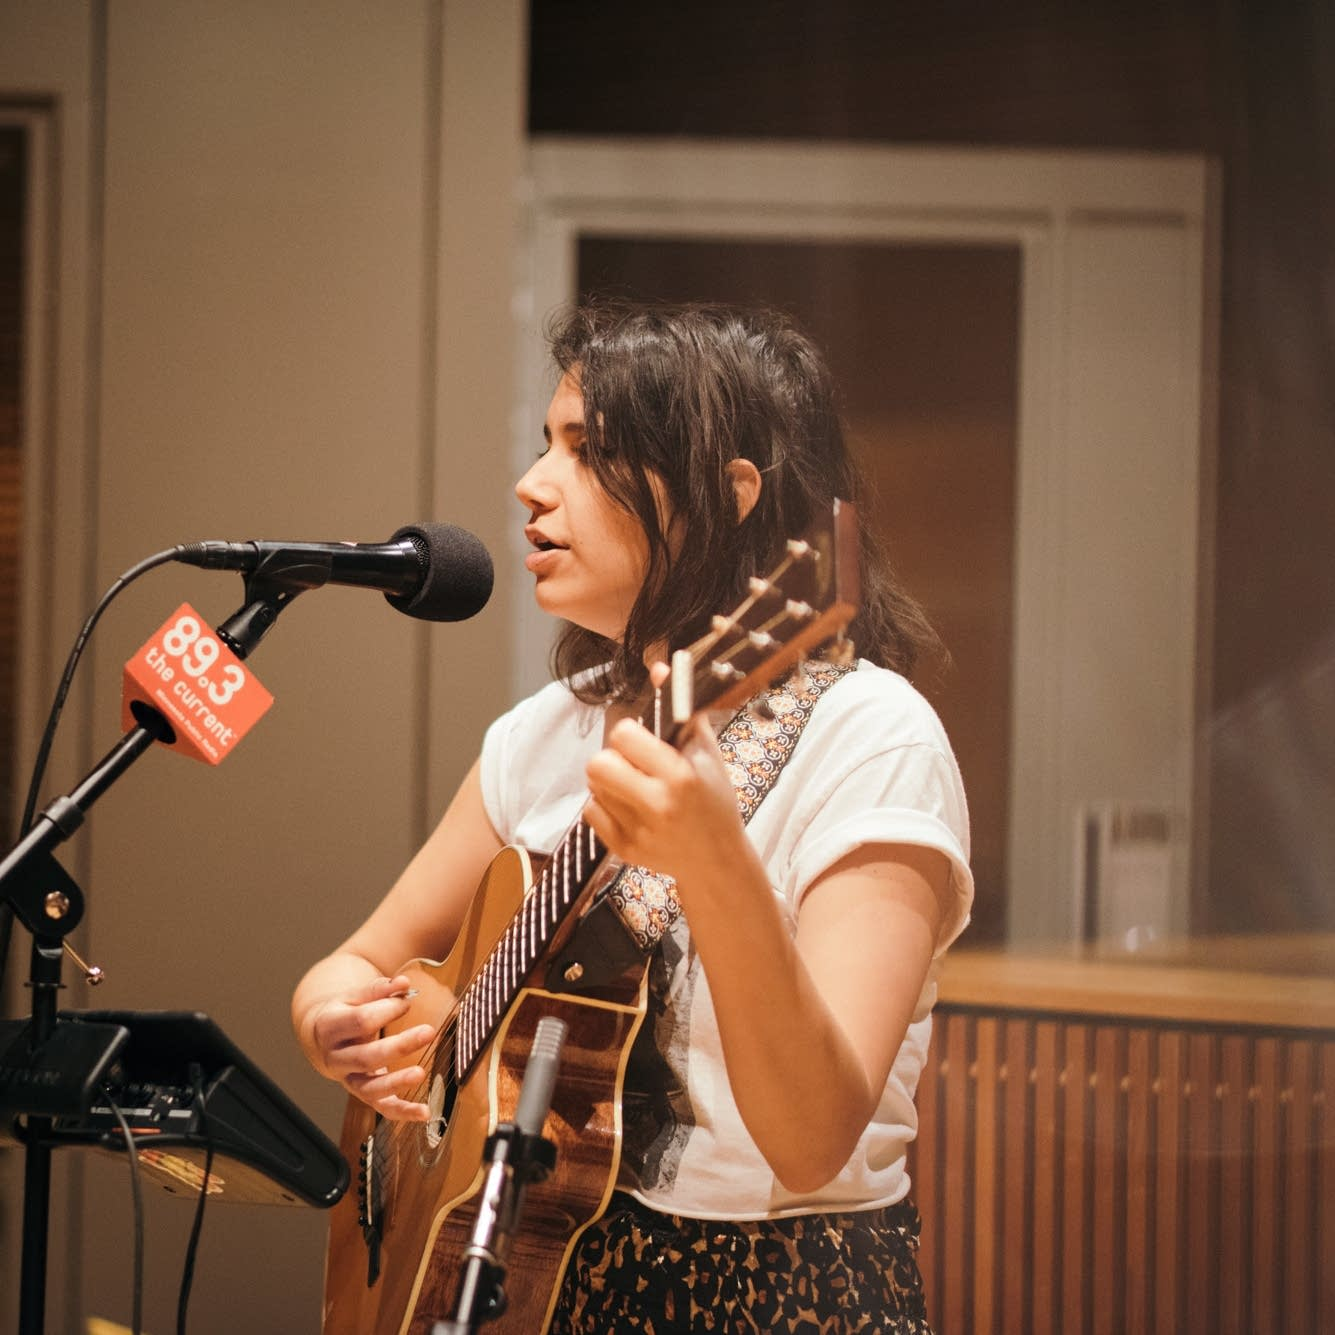 Angelica Garcia performs in The Current studio